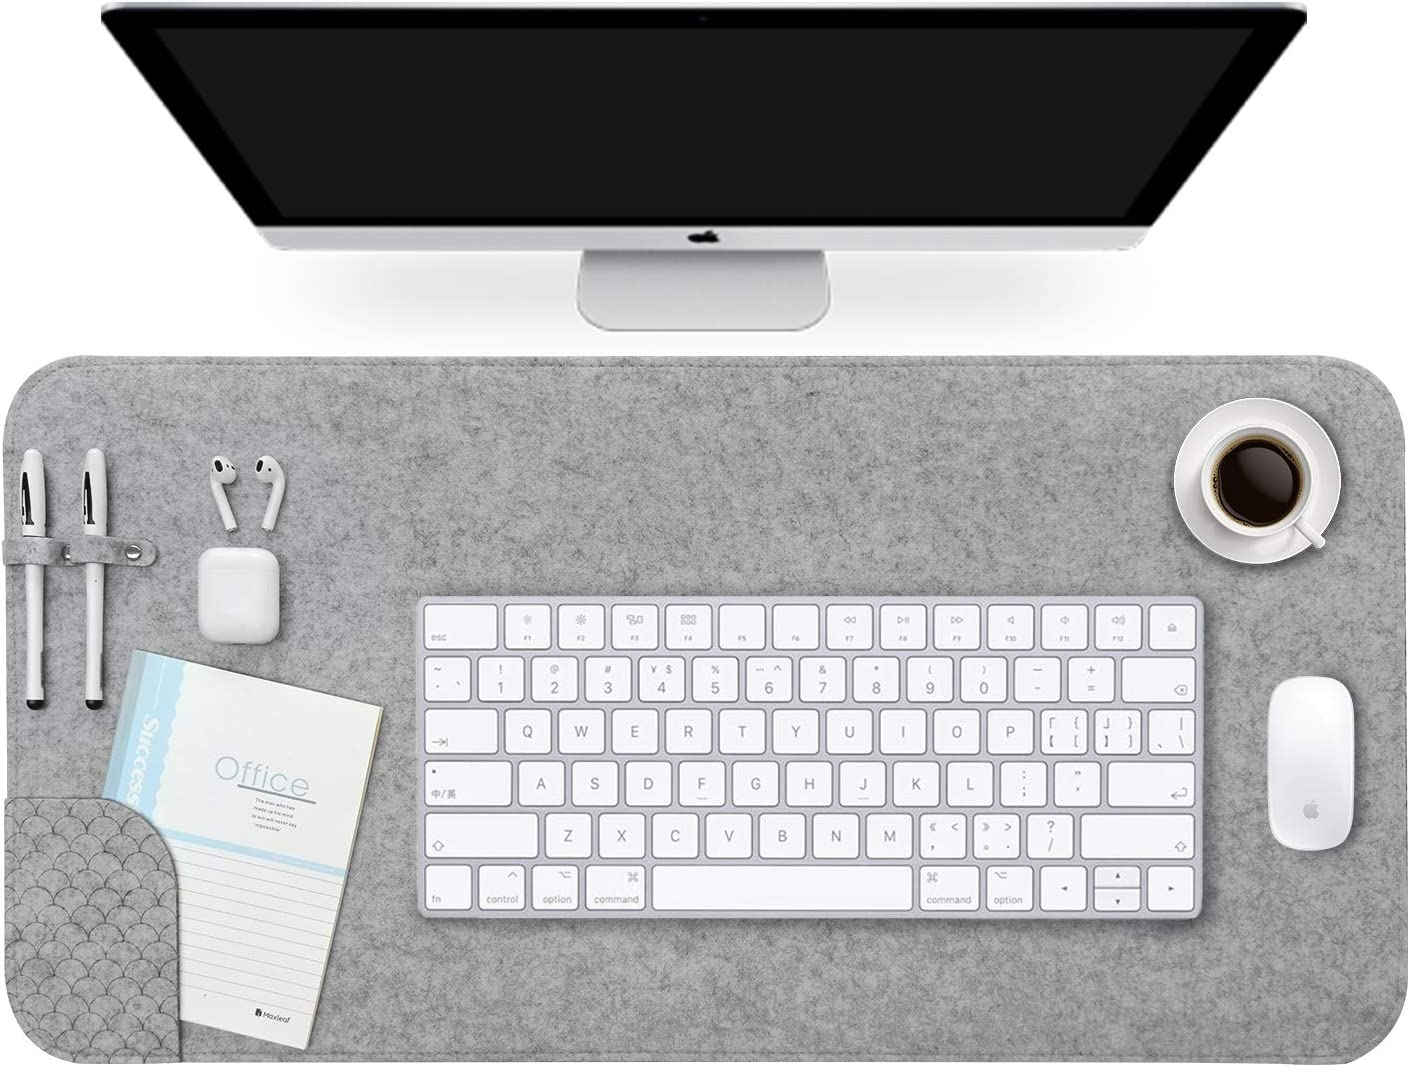 Desk Matt for Desktop, Homesy Large Mouse Pad Waterproof Desk Pads & Blotters for Home and Office Gaming, Non-Slip Desk Protector Writing Mat Organizer Multifunctional Work from Home Desk Accessory